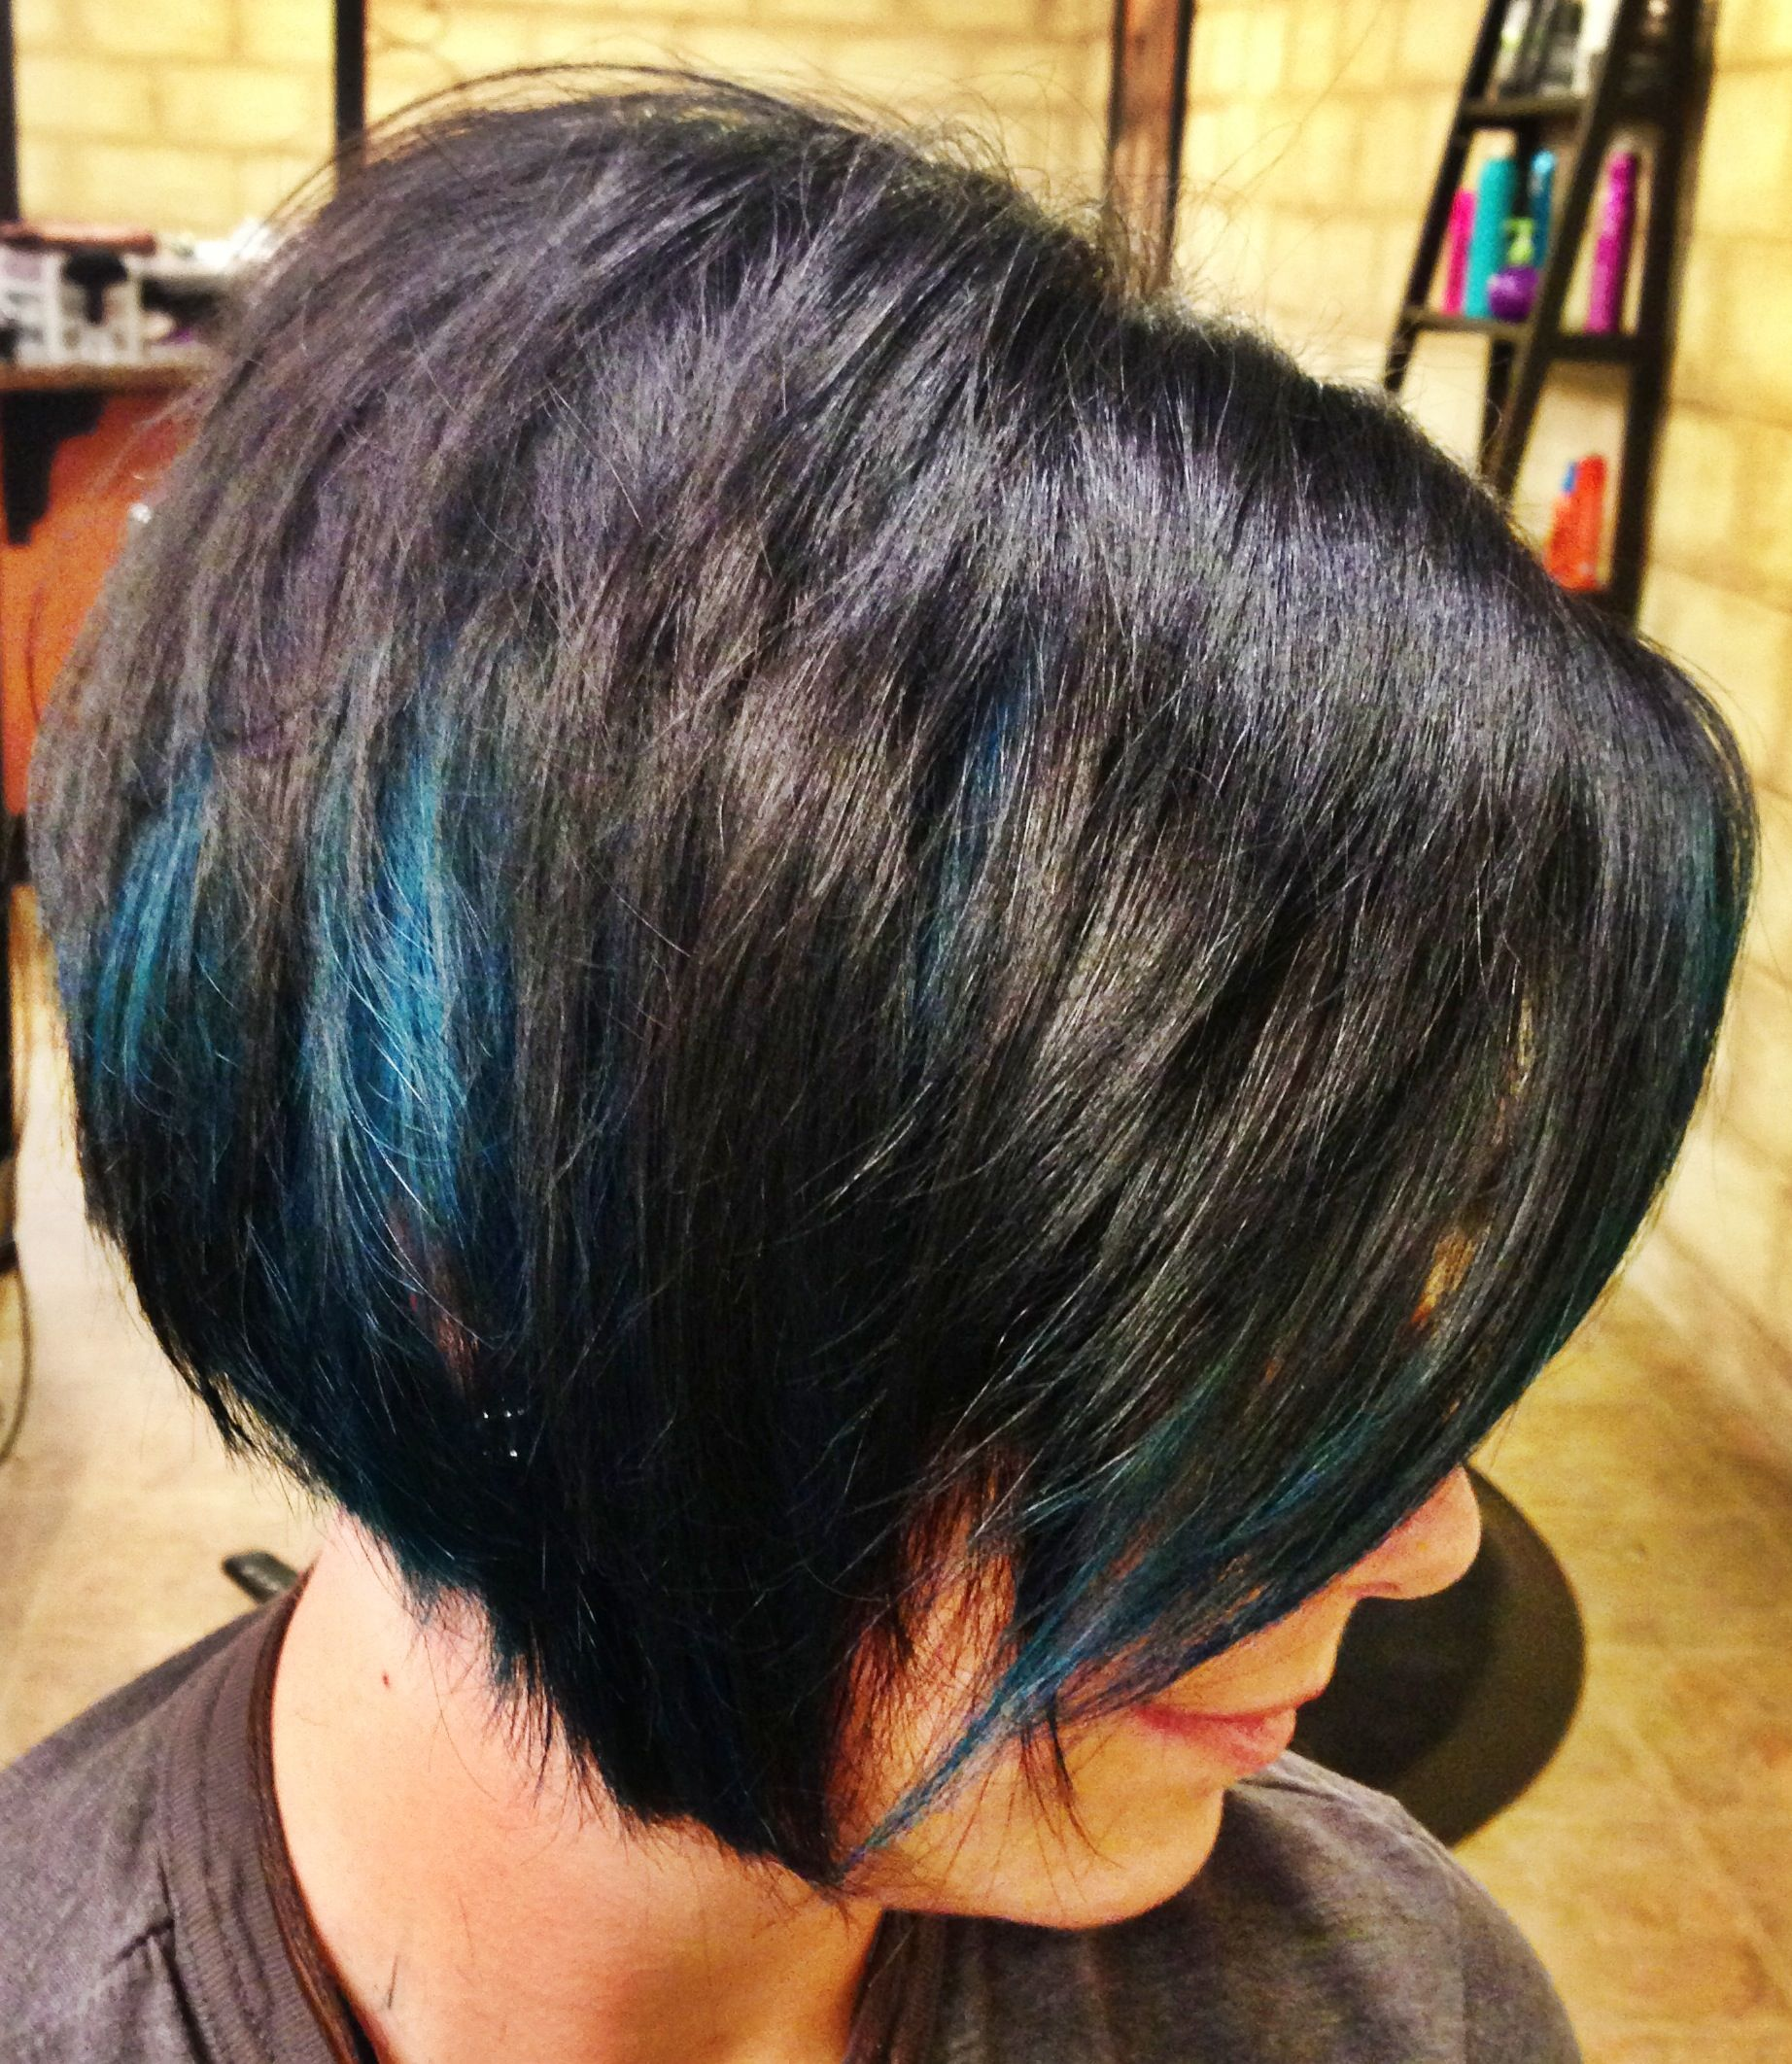 hair style for circle inverted bob peekaboo blue streaks hair by 3993